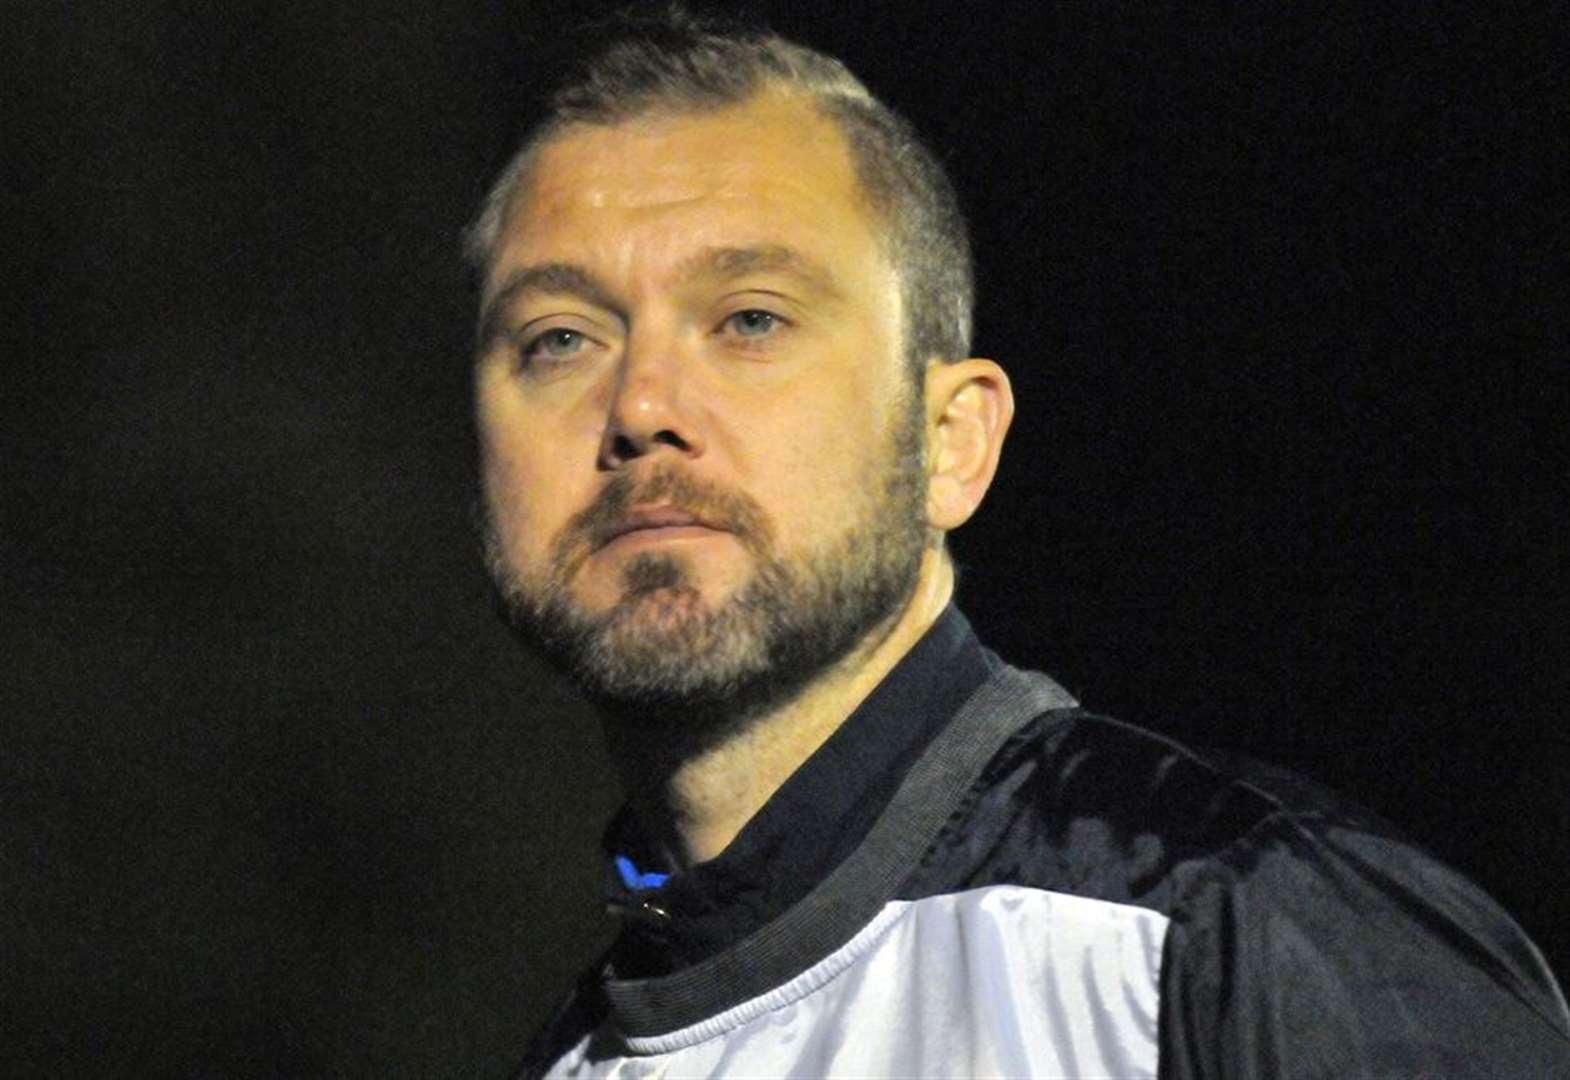 FOOTBALL: Delight for Wakes boss as plans are put in place